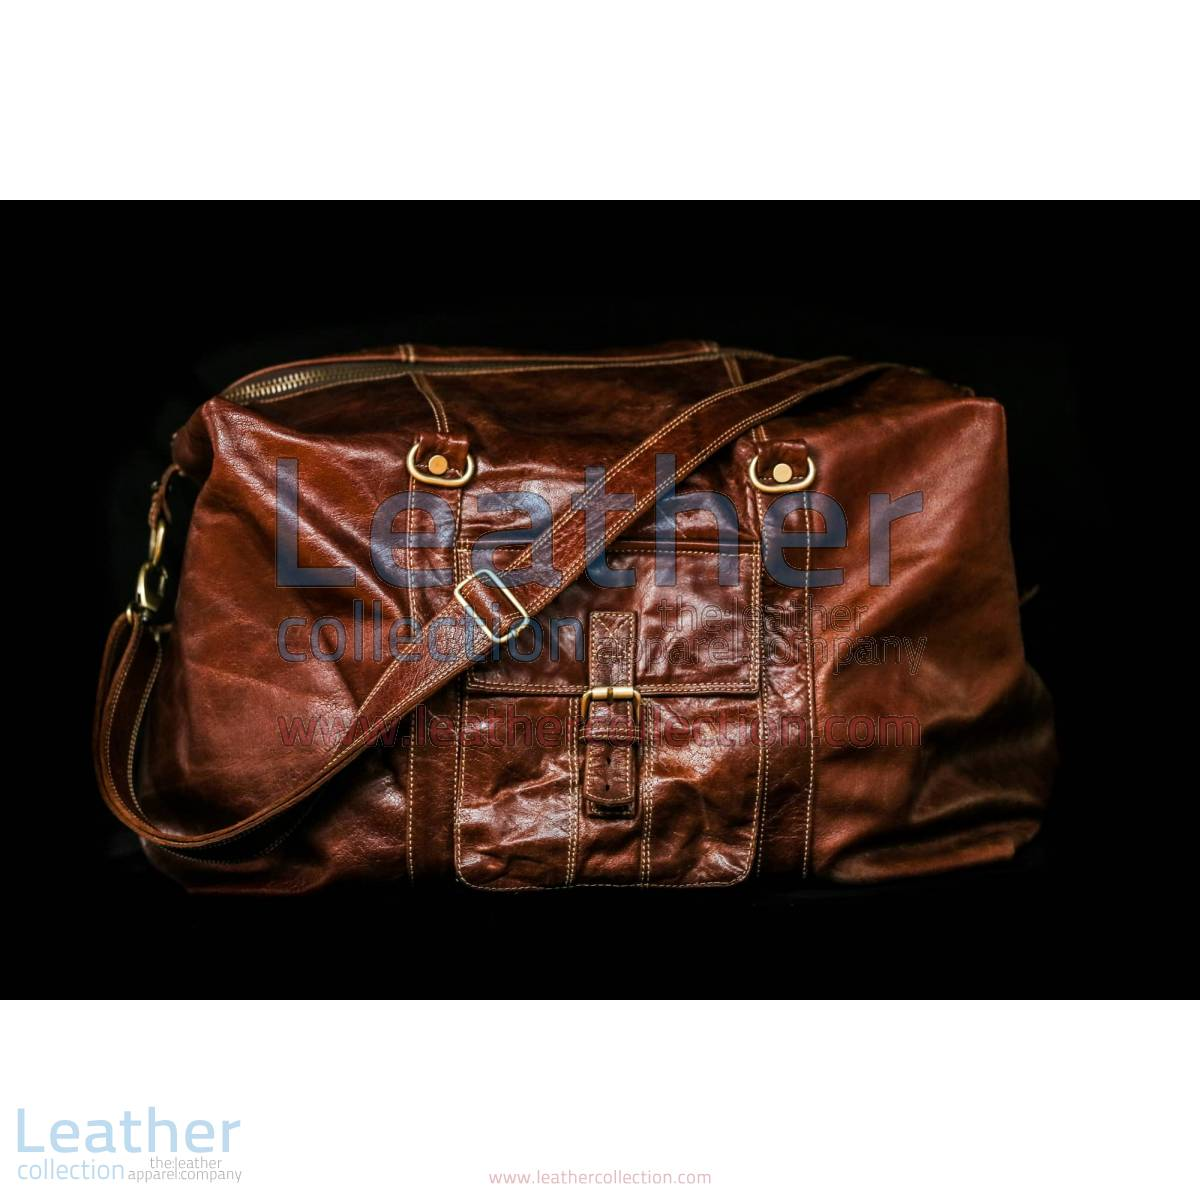 Rome Leather Luggage Bag | leather luggage bag